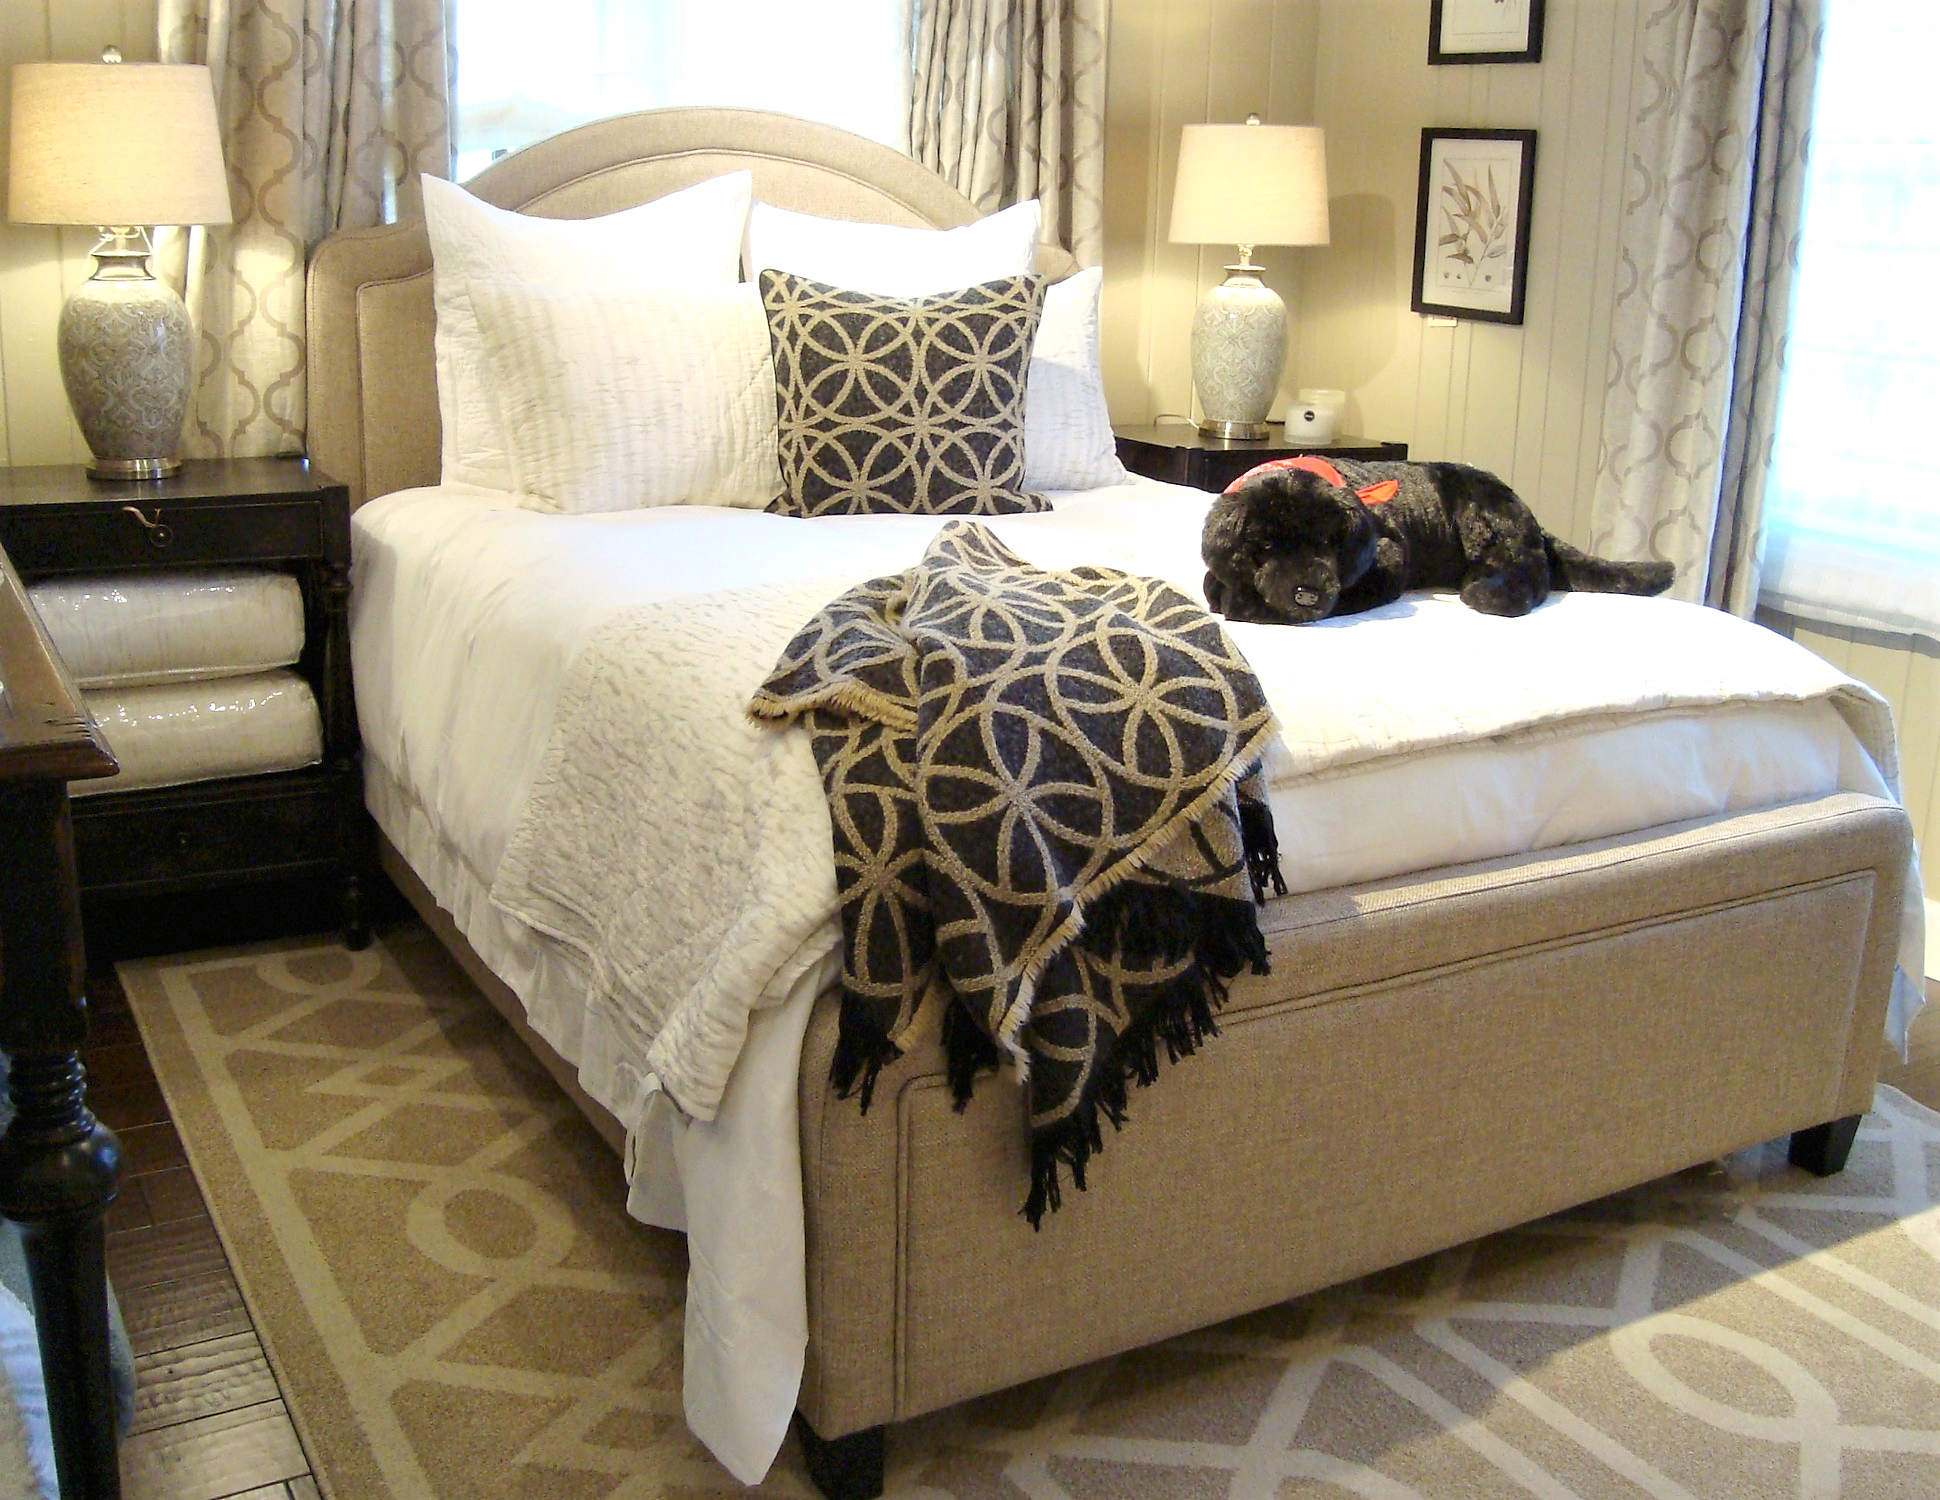 Our experienced designers will help you with any special requests. Custom sizes, special finishes and personal designs to suit your needs and lifestyle. We also carry a full line of mattresses on display in a separate room for you to try.